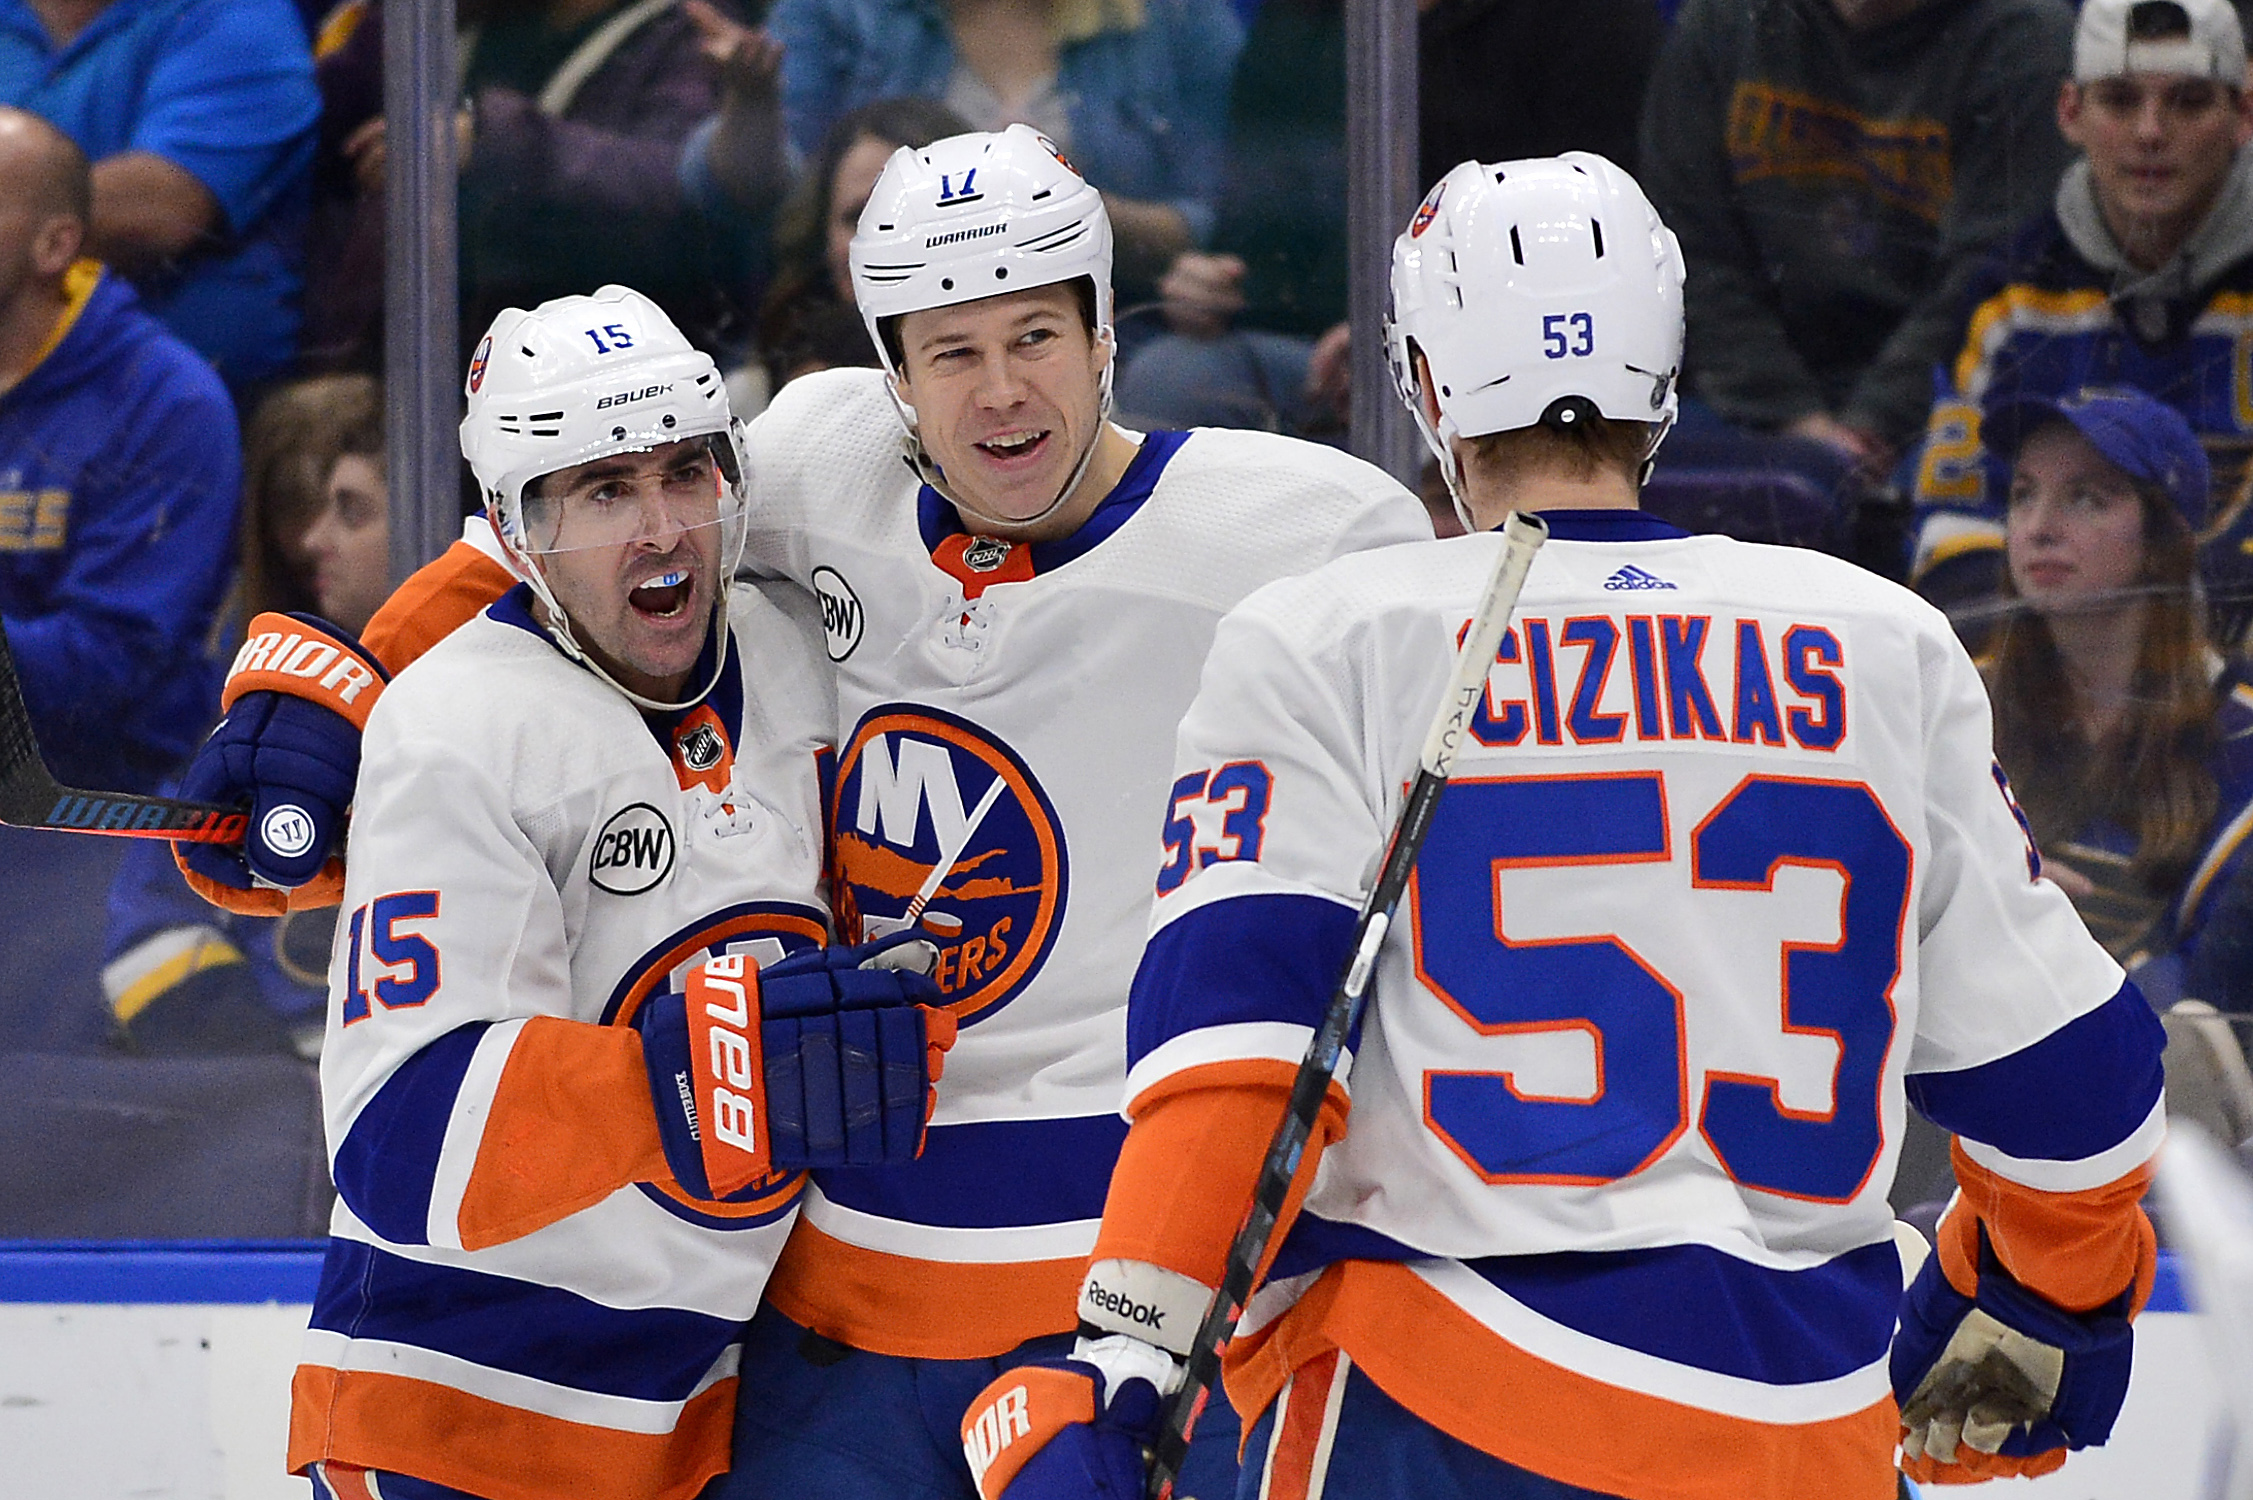 Jan 5, 2019; St. Louis, MO, USA; New York Islanders left wing Matt Martin (17) is congratulated by right wing Cal Clutterbuck (15) and center Casey Cizikas (53) after scoring during the second period against the St. Louis Blues at Enterprise Center. Mandatory Credit: Jeff Curry-USA TODAY Sports